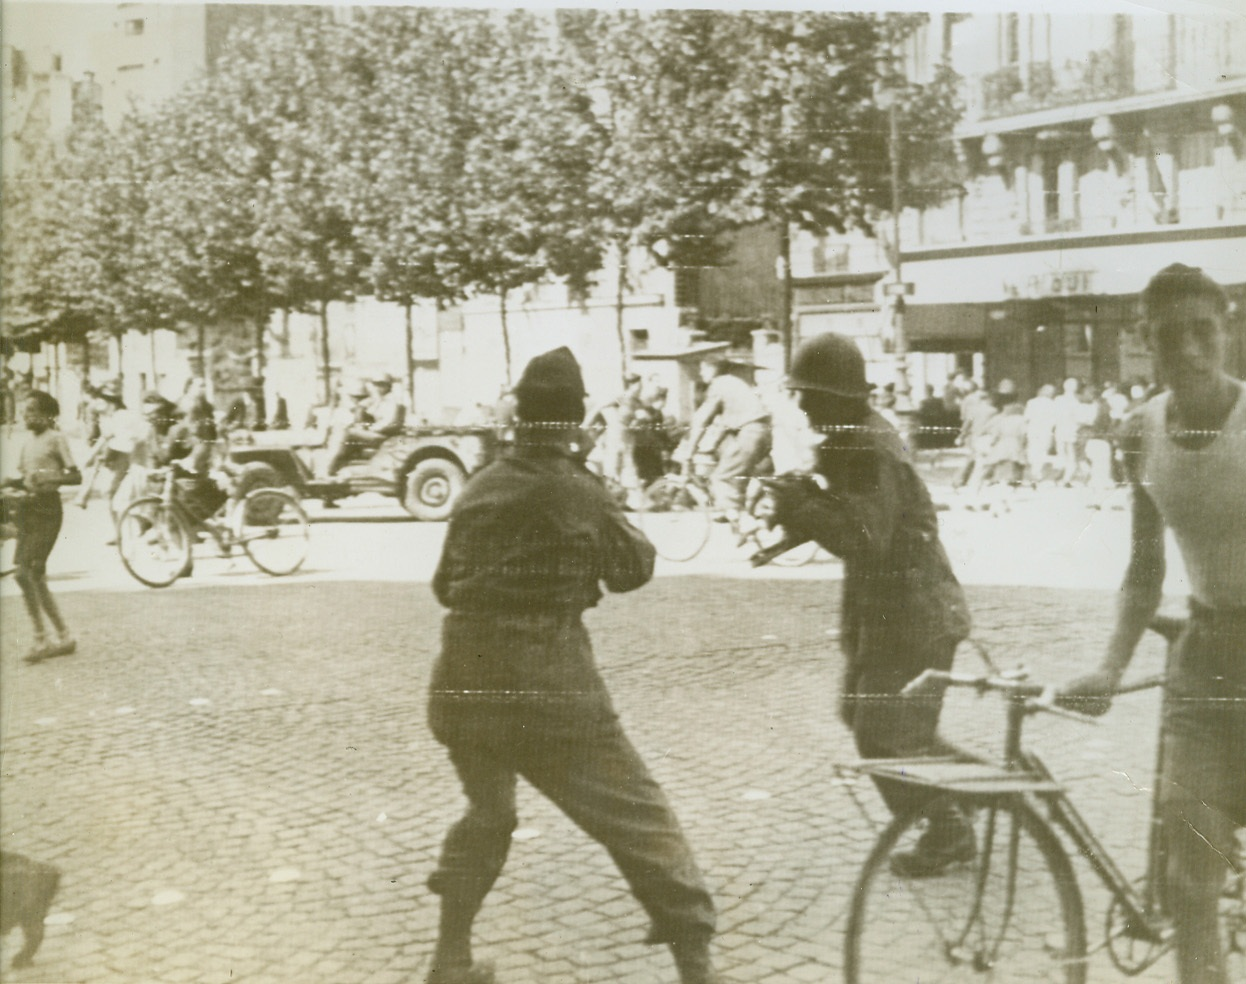 Paris Celebration Ends in Riot, 8/27/1944. Paris, France—A few minutes before the scene of a triumphal procession celebrating the liberation of Paris, this street in the vicinity of the Eiffel Tower is now filled with people scrambling to escape the rifle fire of Nazis and collaborationists quartered in nearby buildings. It was during this procession that an attempt was made on the life of Gen. de Gaulle. The photographers in the foreground, taking pictures as the people scramble for shelter, are probably war picture pool correspondents.  Credit: ACME photo via Signal Corps;